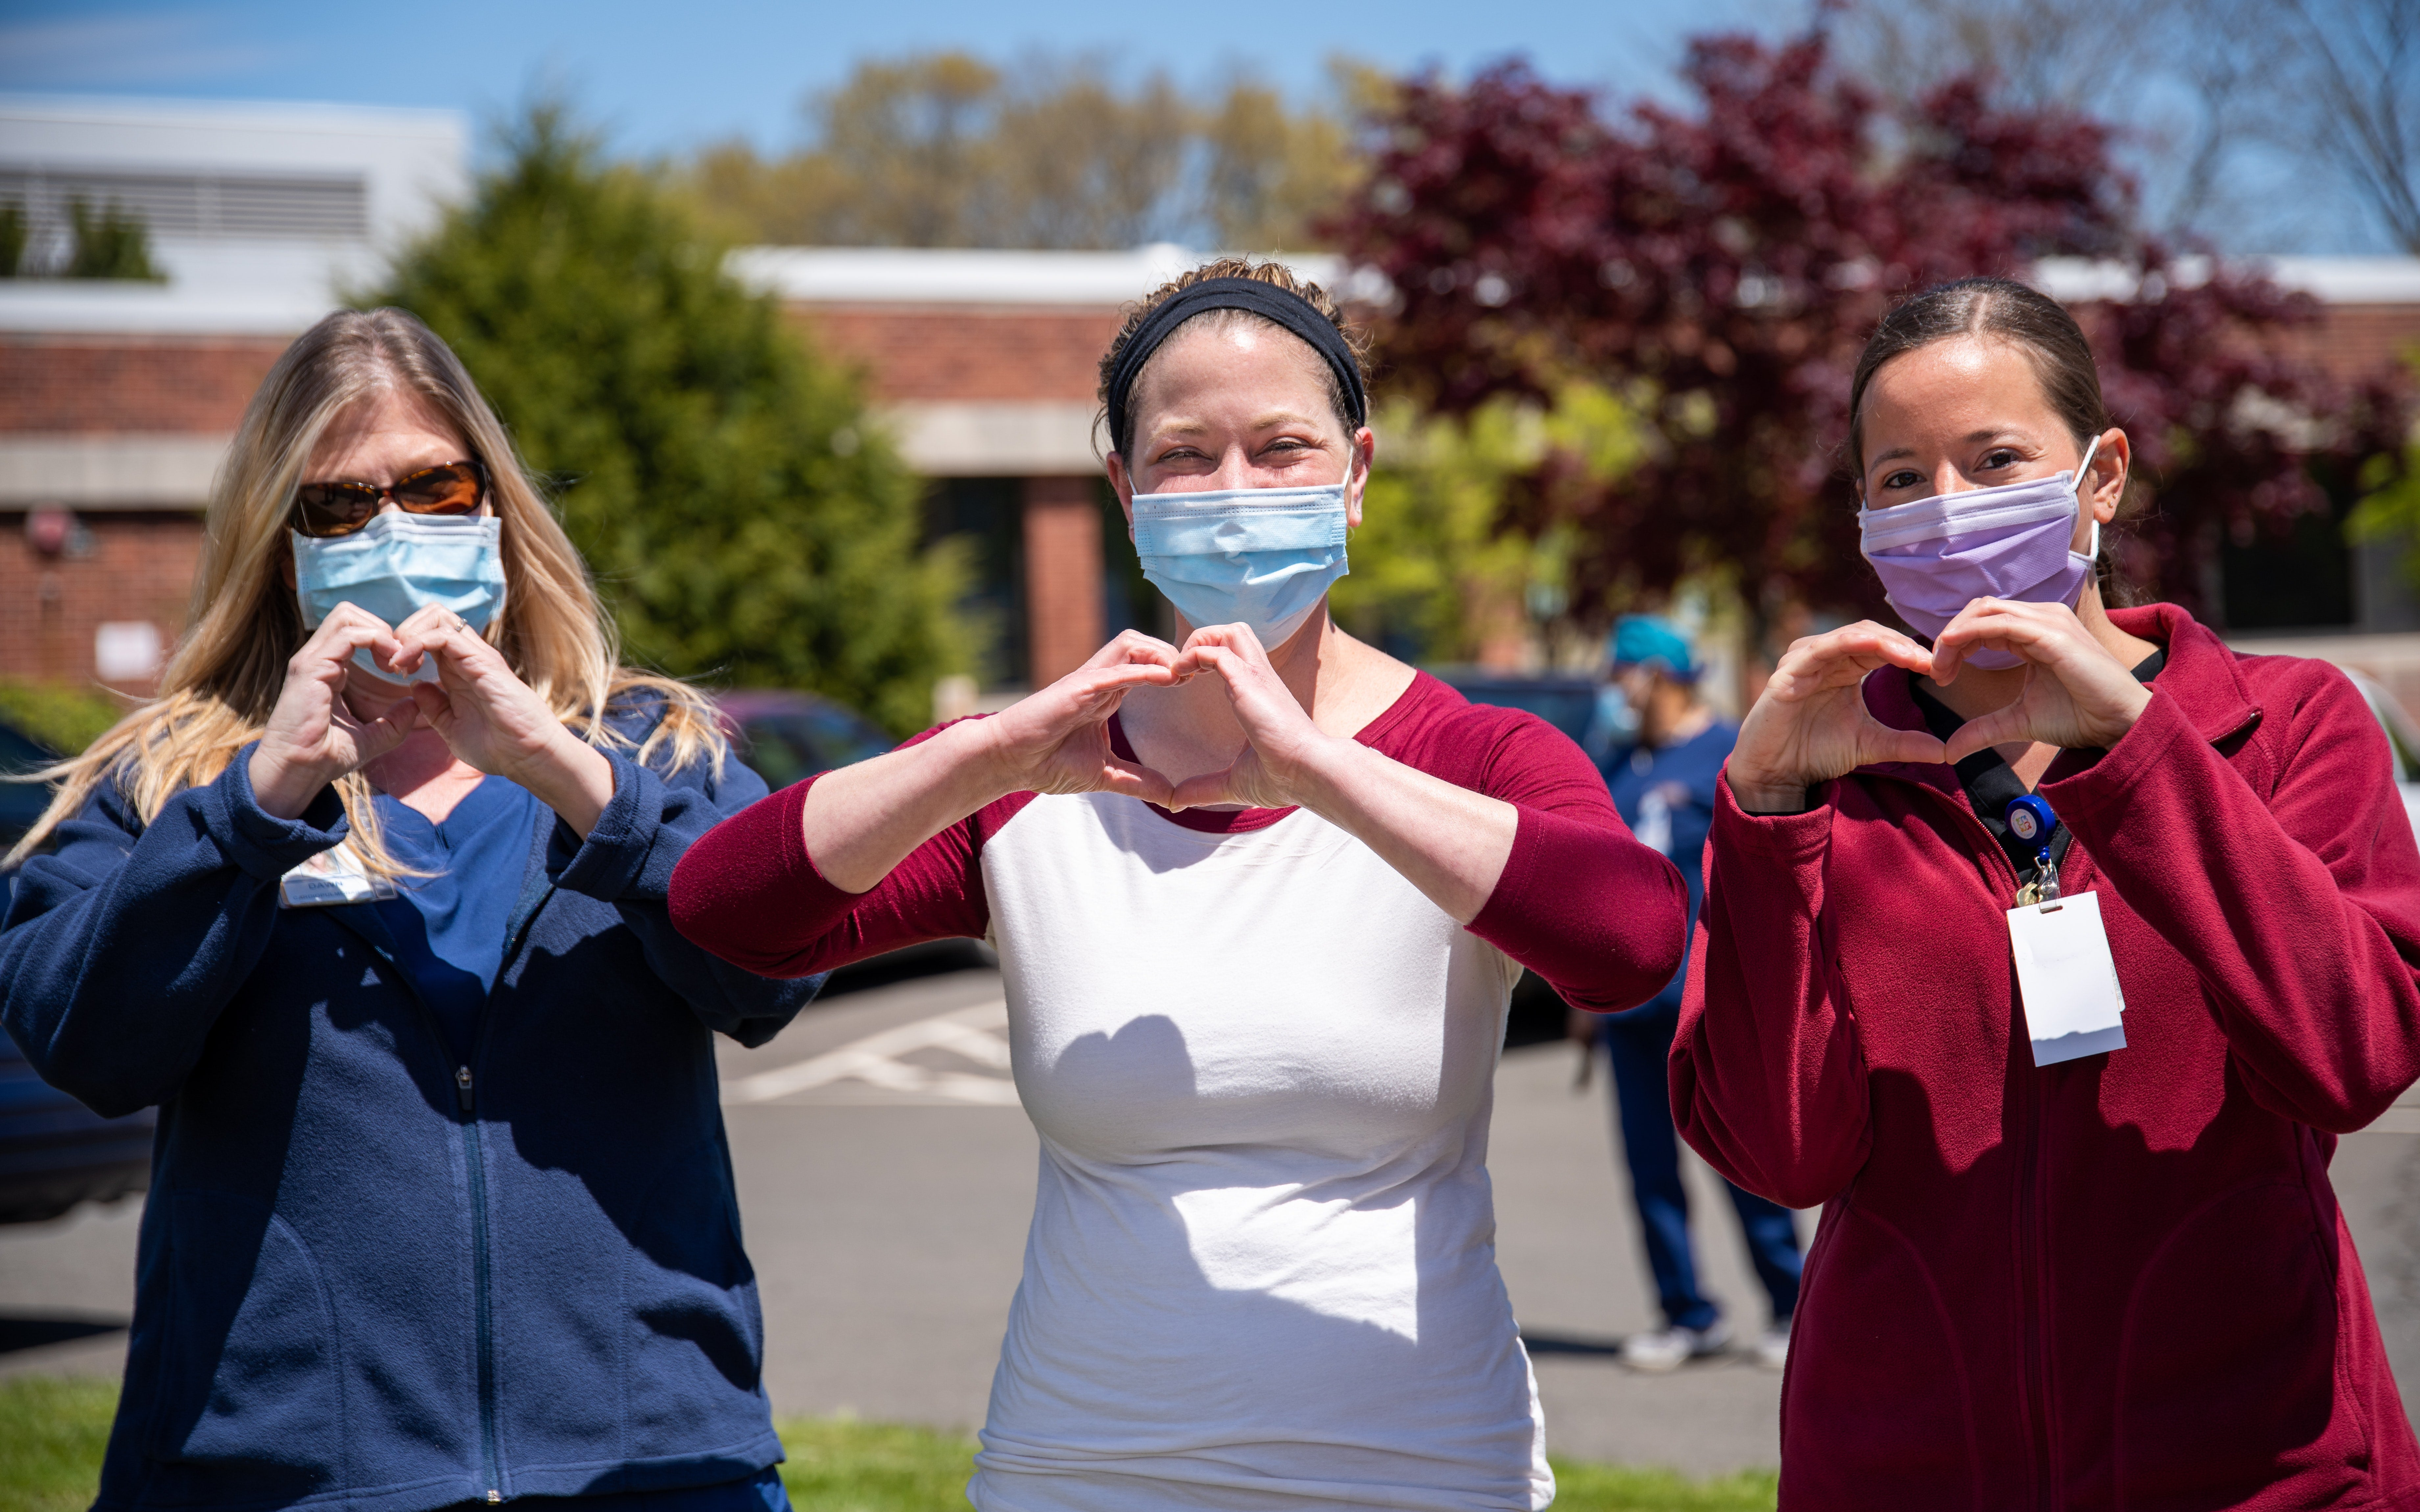 Nurses at Manchester Hospital during COVID, making heart shapes with their hands